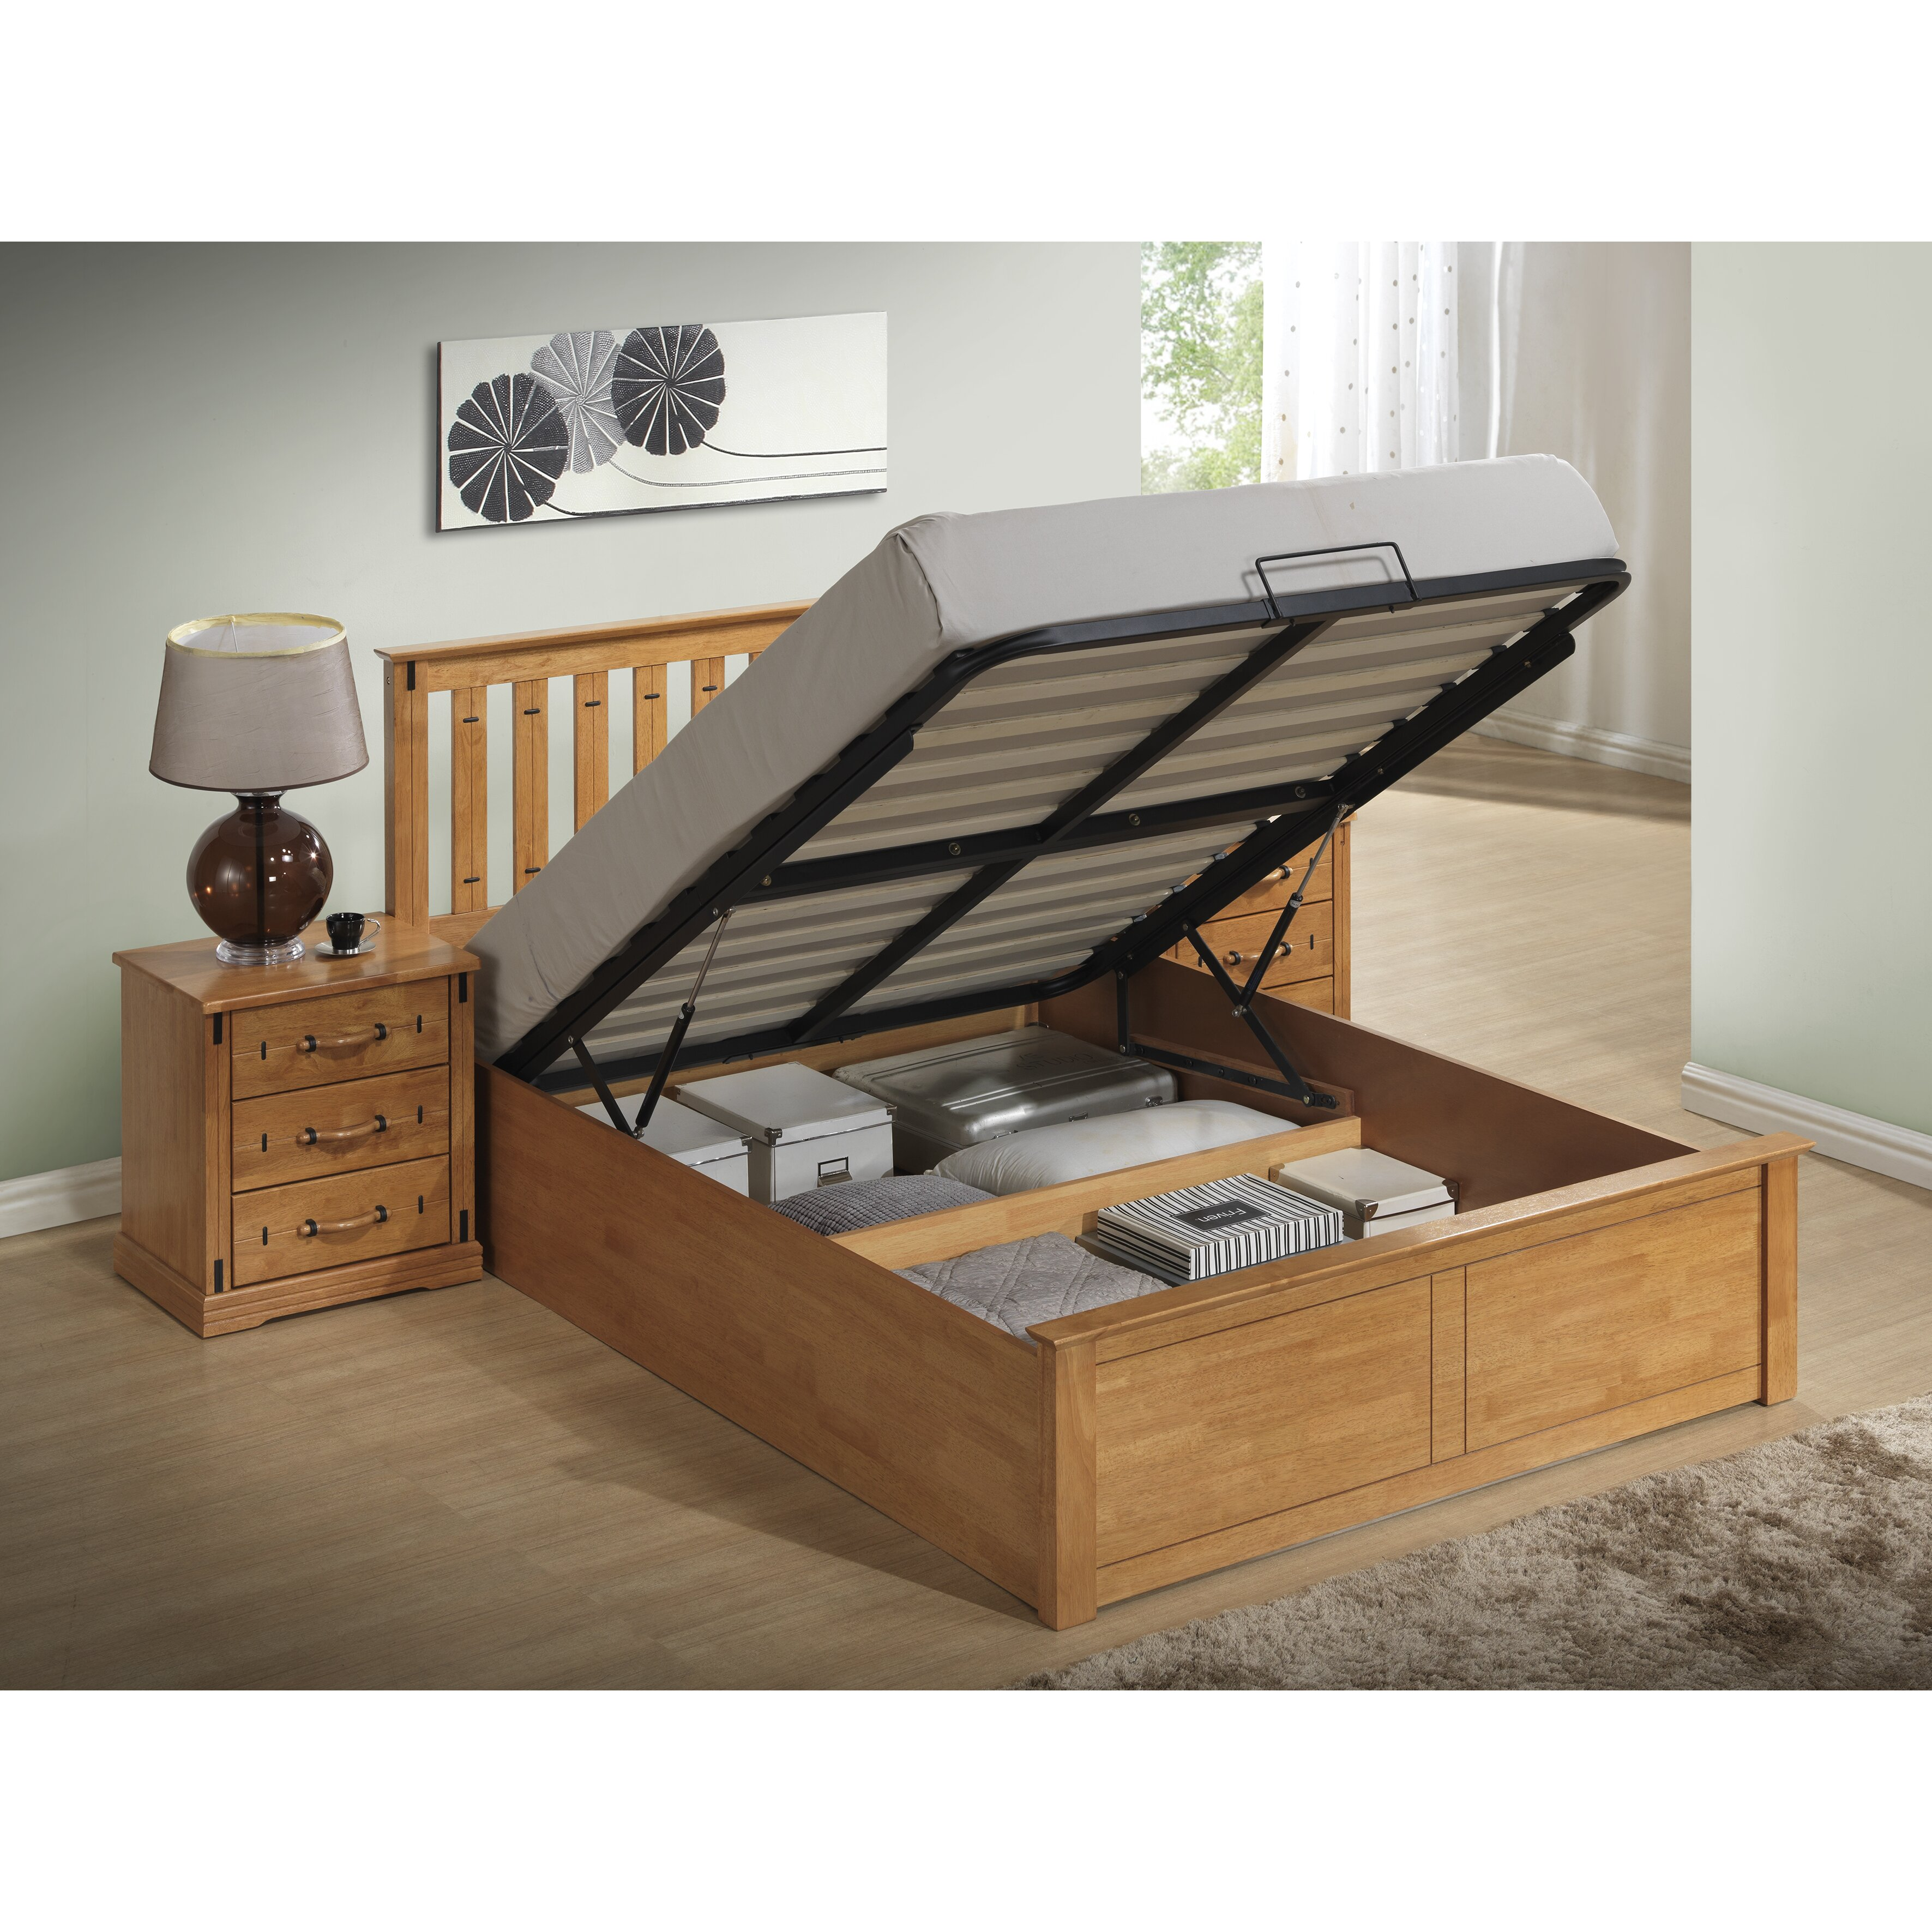 Ottoman Beds Reviews Best Ottoman Storage Beds Reviews Of 2016 2017 Limelight Jupiter